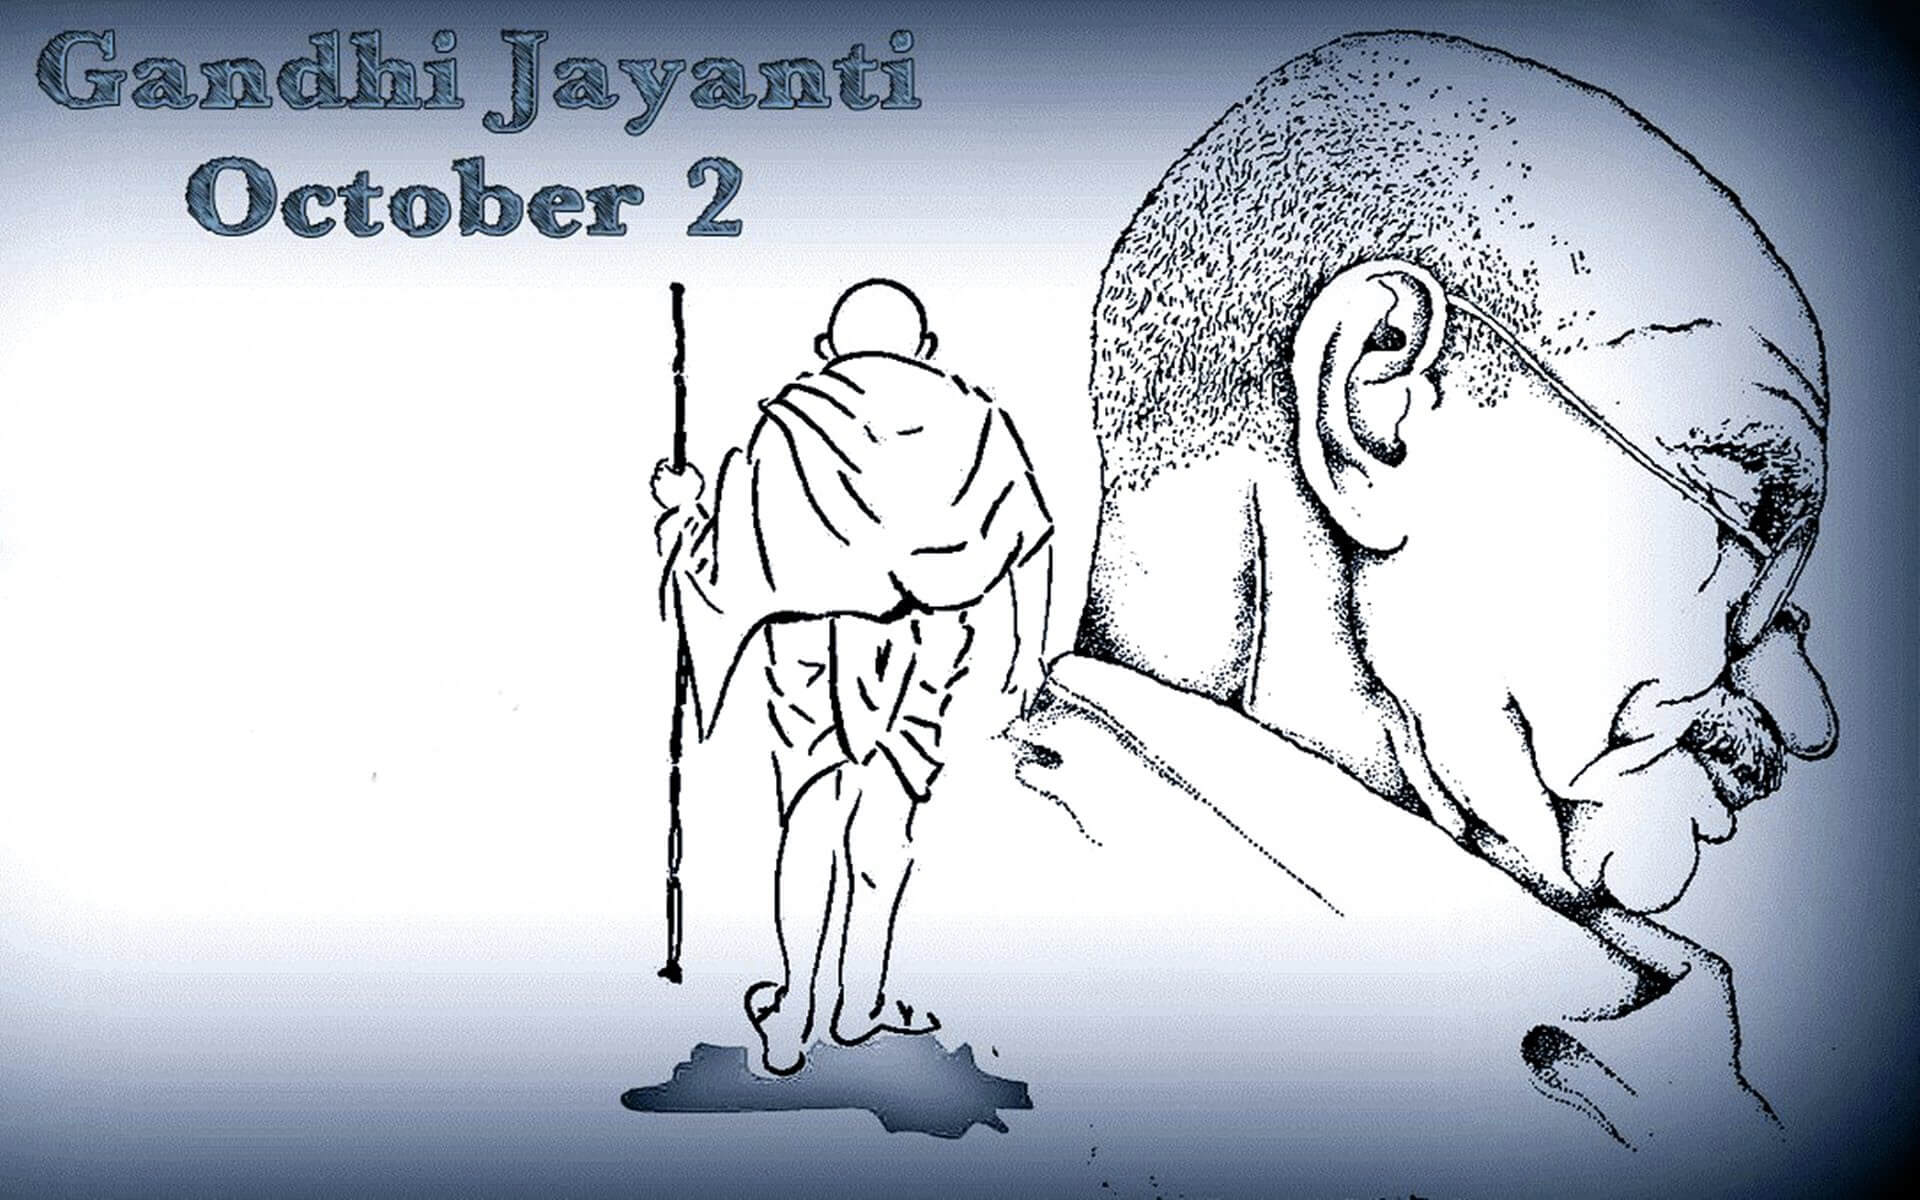 mahatma gandhi jayanti october 2 latest hd wallpaper